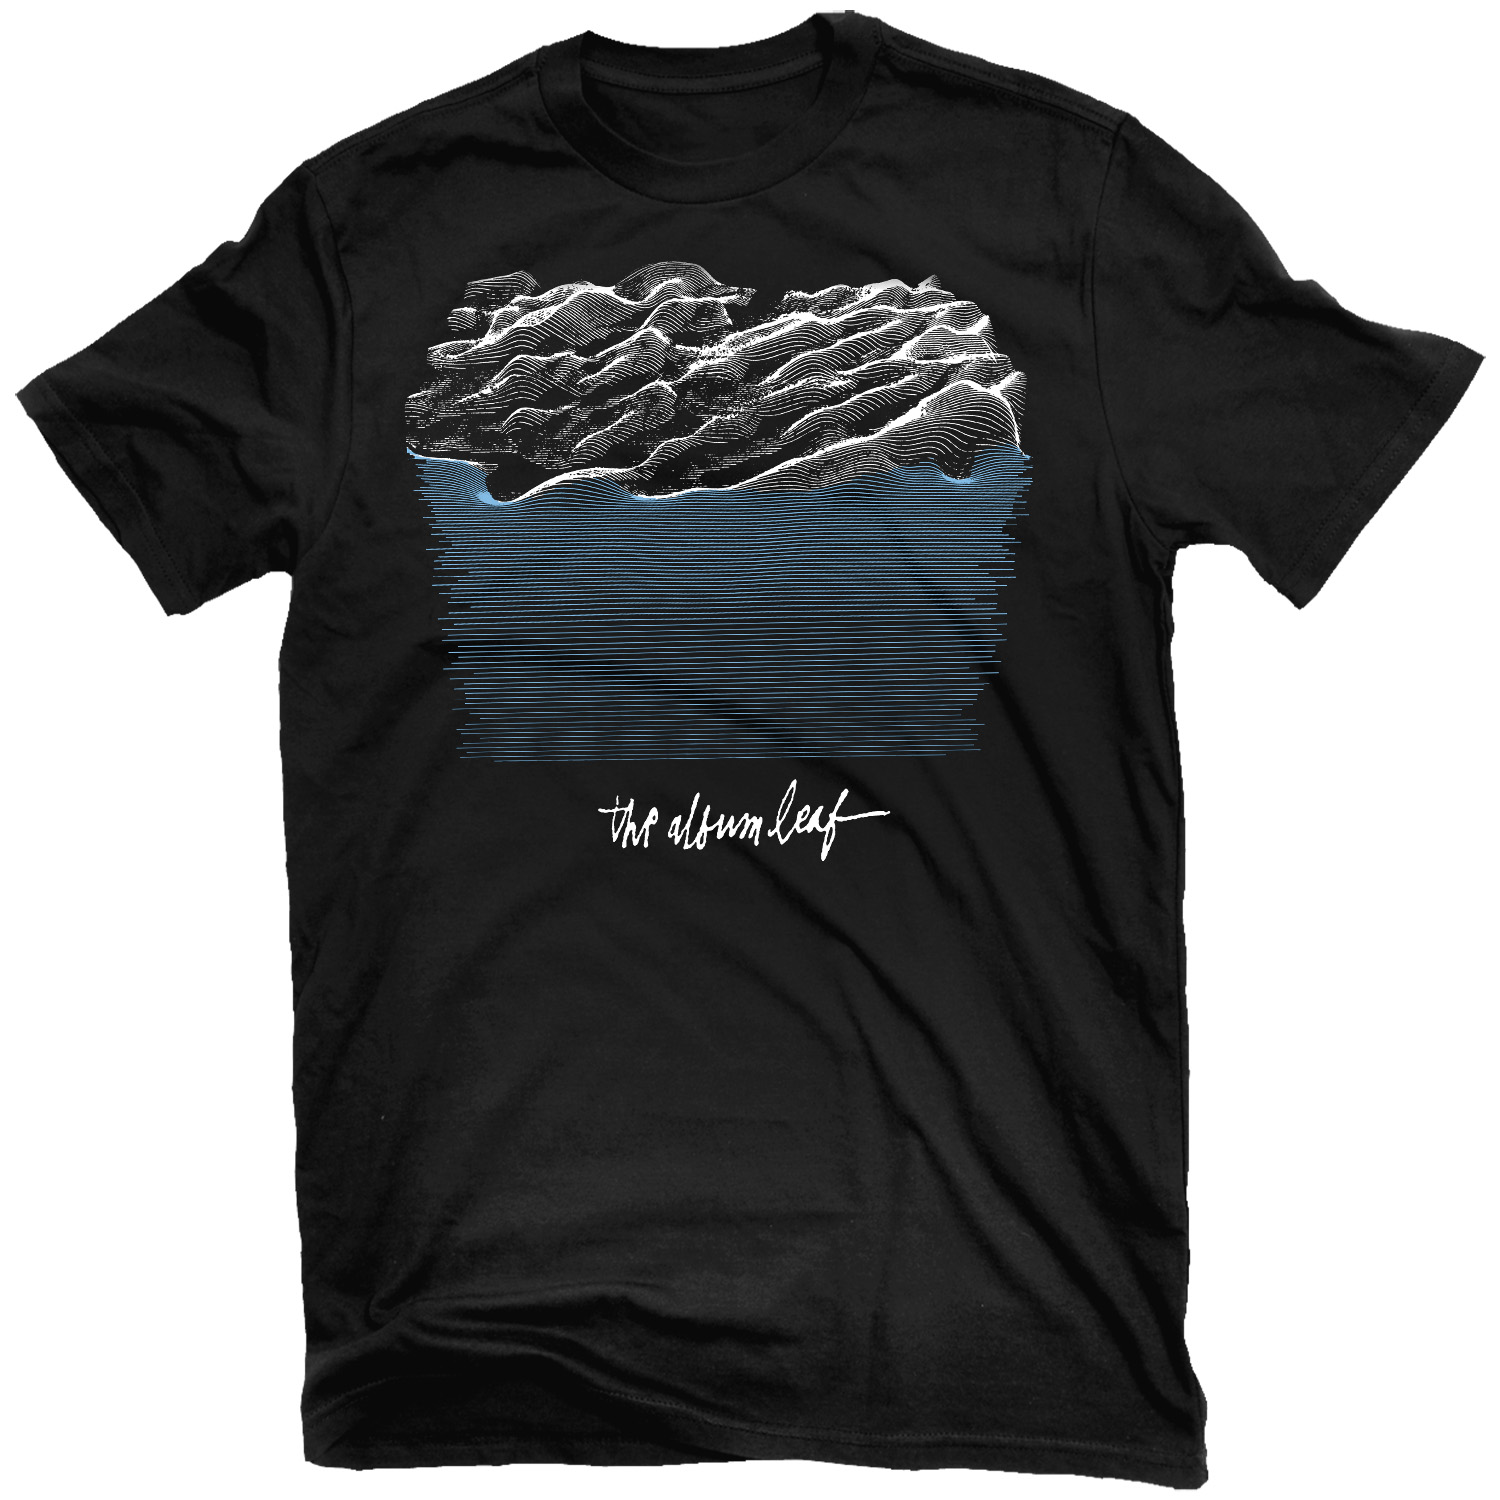 Between Waves T Shirt + Deluxe 2LP Bundle